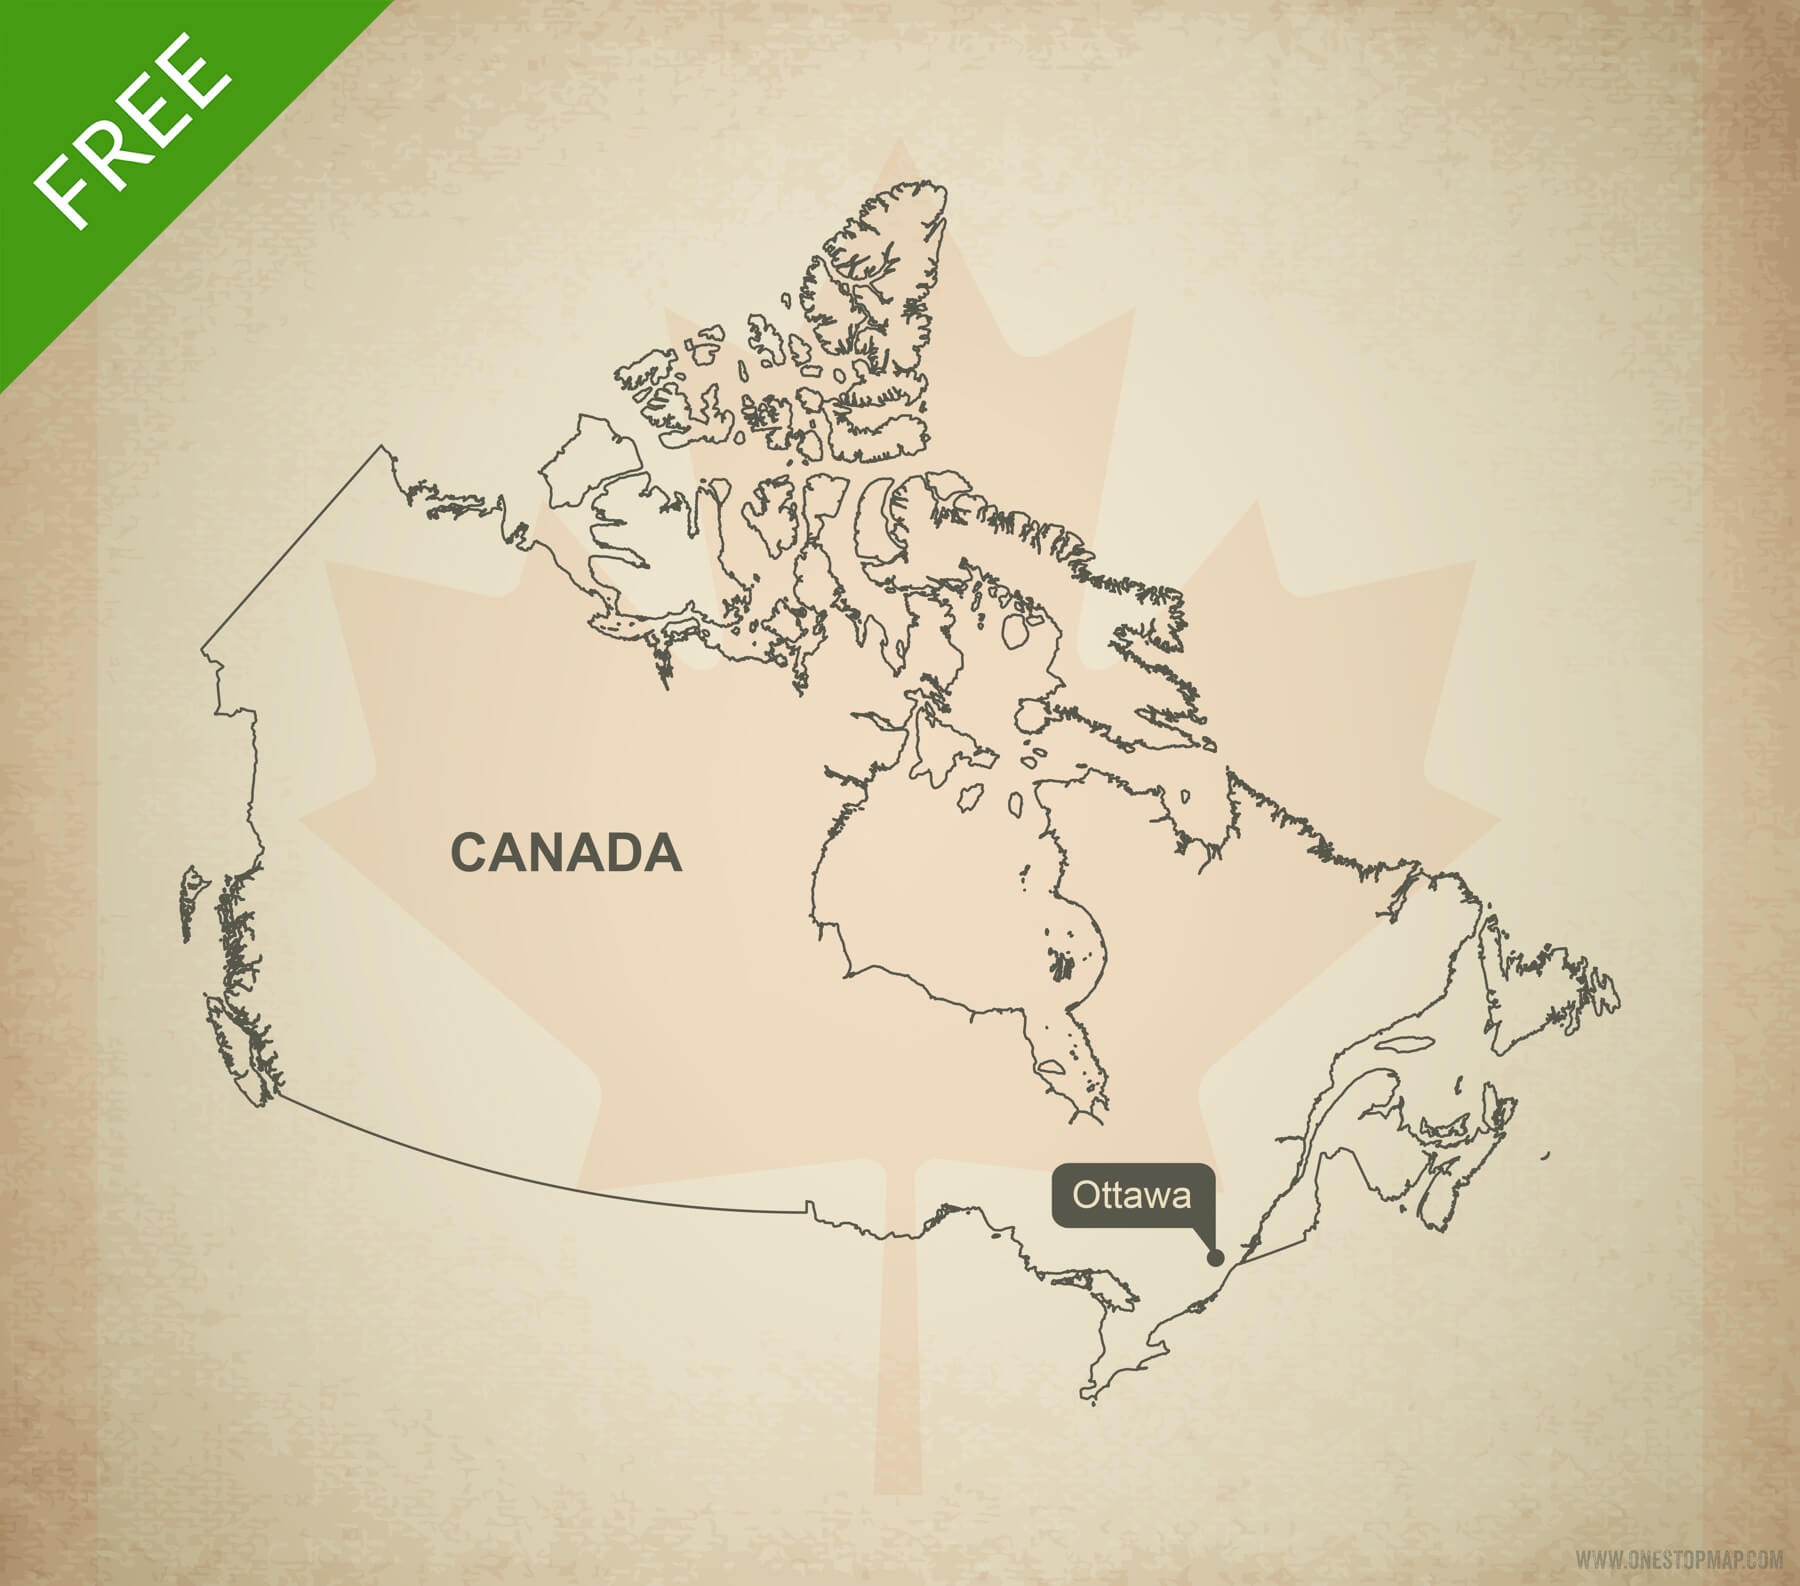 Quebec On Map Of Canada.Free Vector Map Of Canada Outline One Stop Map